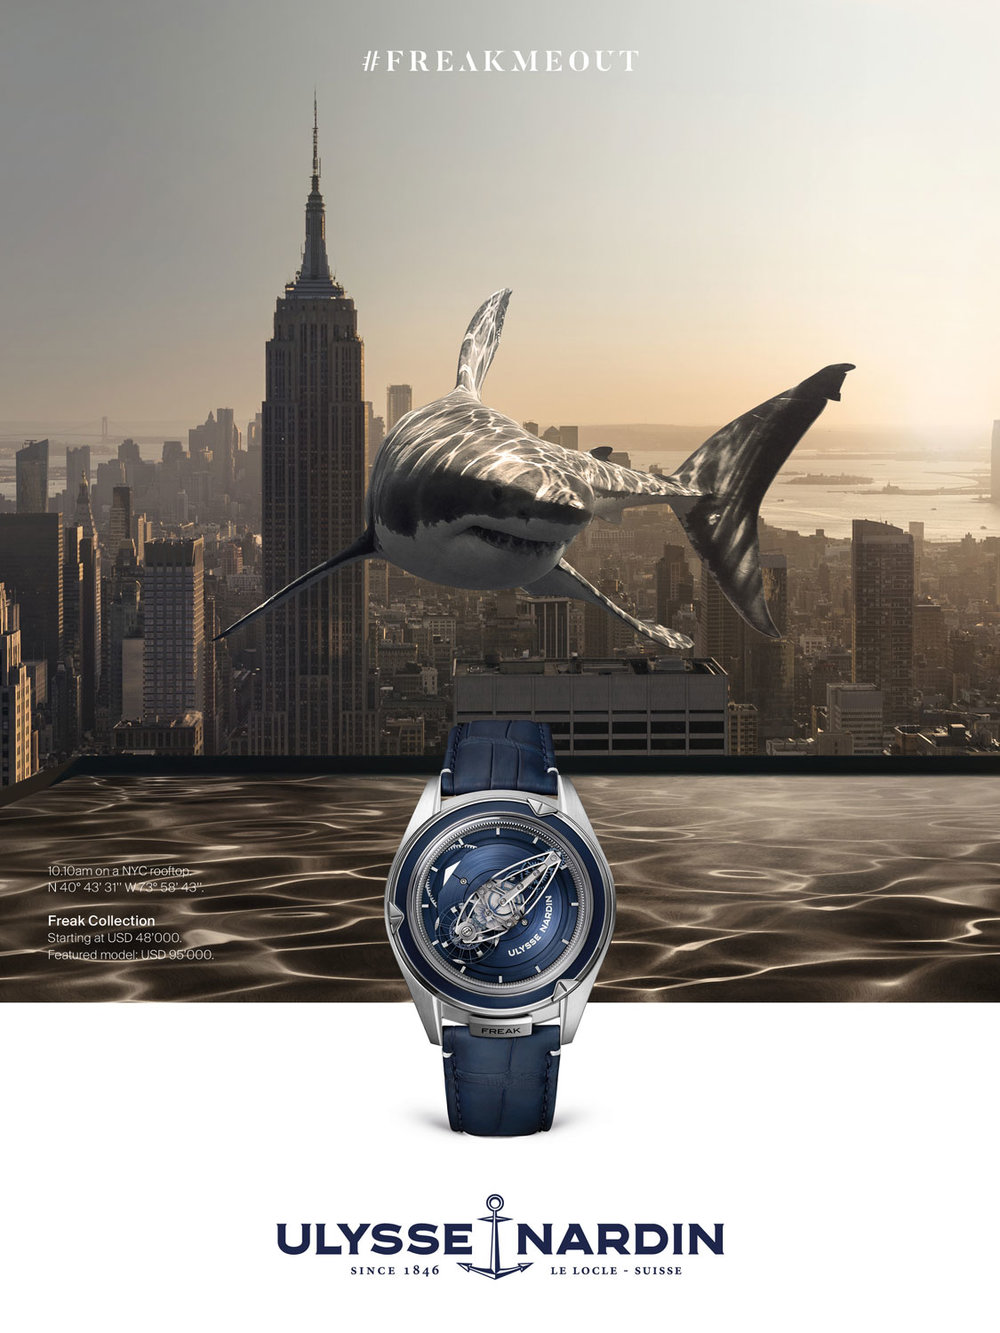 The_Ink_Collective_Creative_Content_Design_Agency_Paris_Sydney_Luxury_Editorial_Kering_Ulysse_Nardin_CEO_Patrick_Pruniaux_CEO_Interview_Luxury_Watches_Timepieces_Swiss_Manufacture_Freak_Out_11.jpg